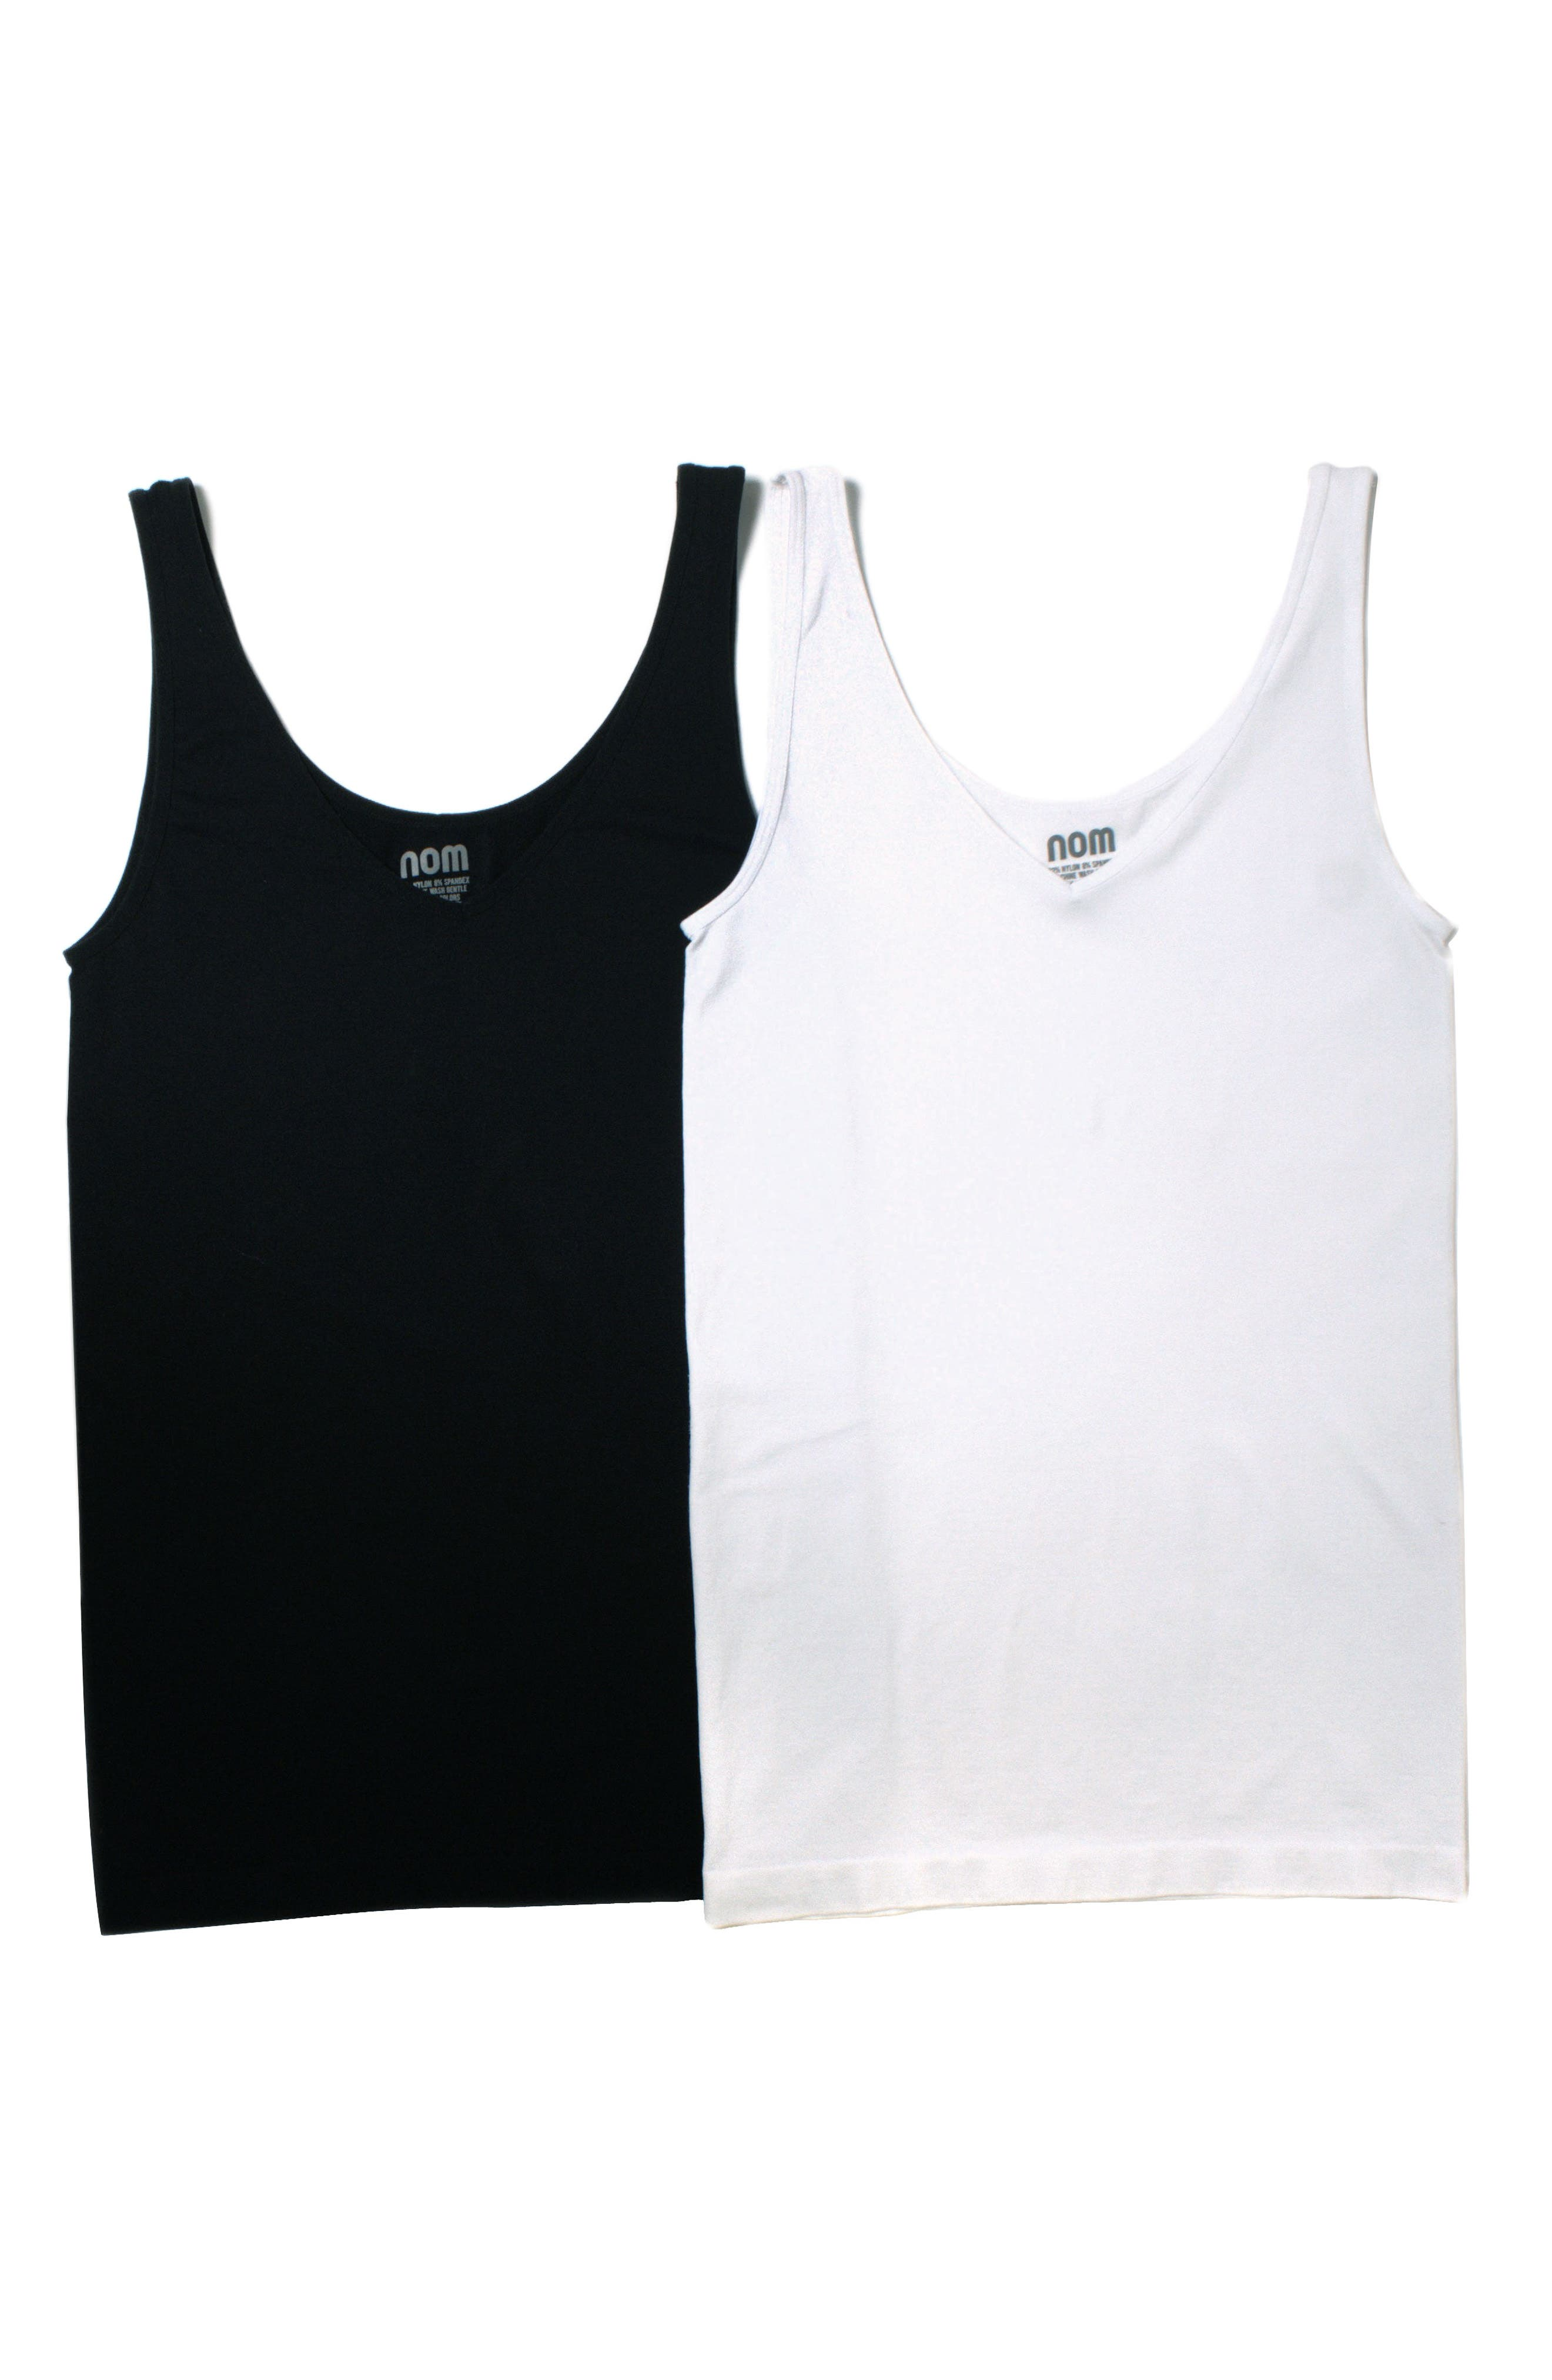 2-Pack Seamless Maternity Tanks,                         Main,                         color, Black And White Set